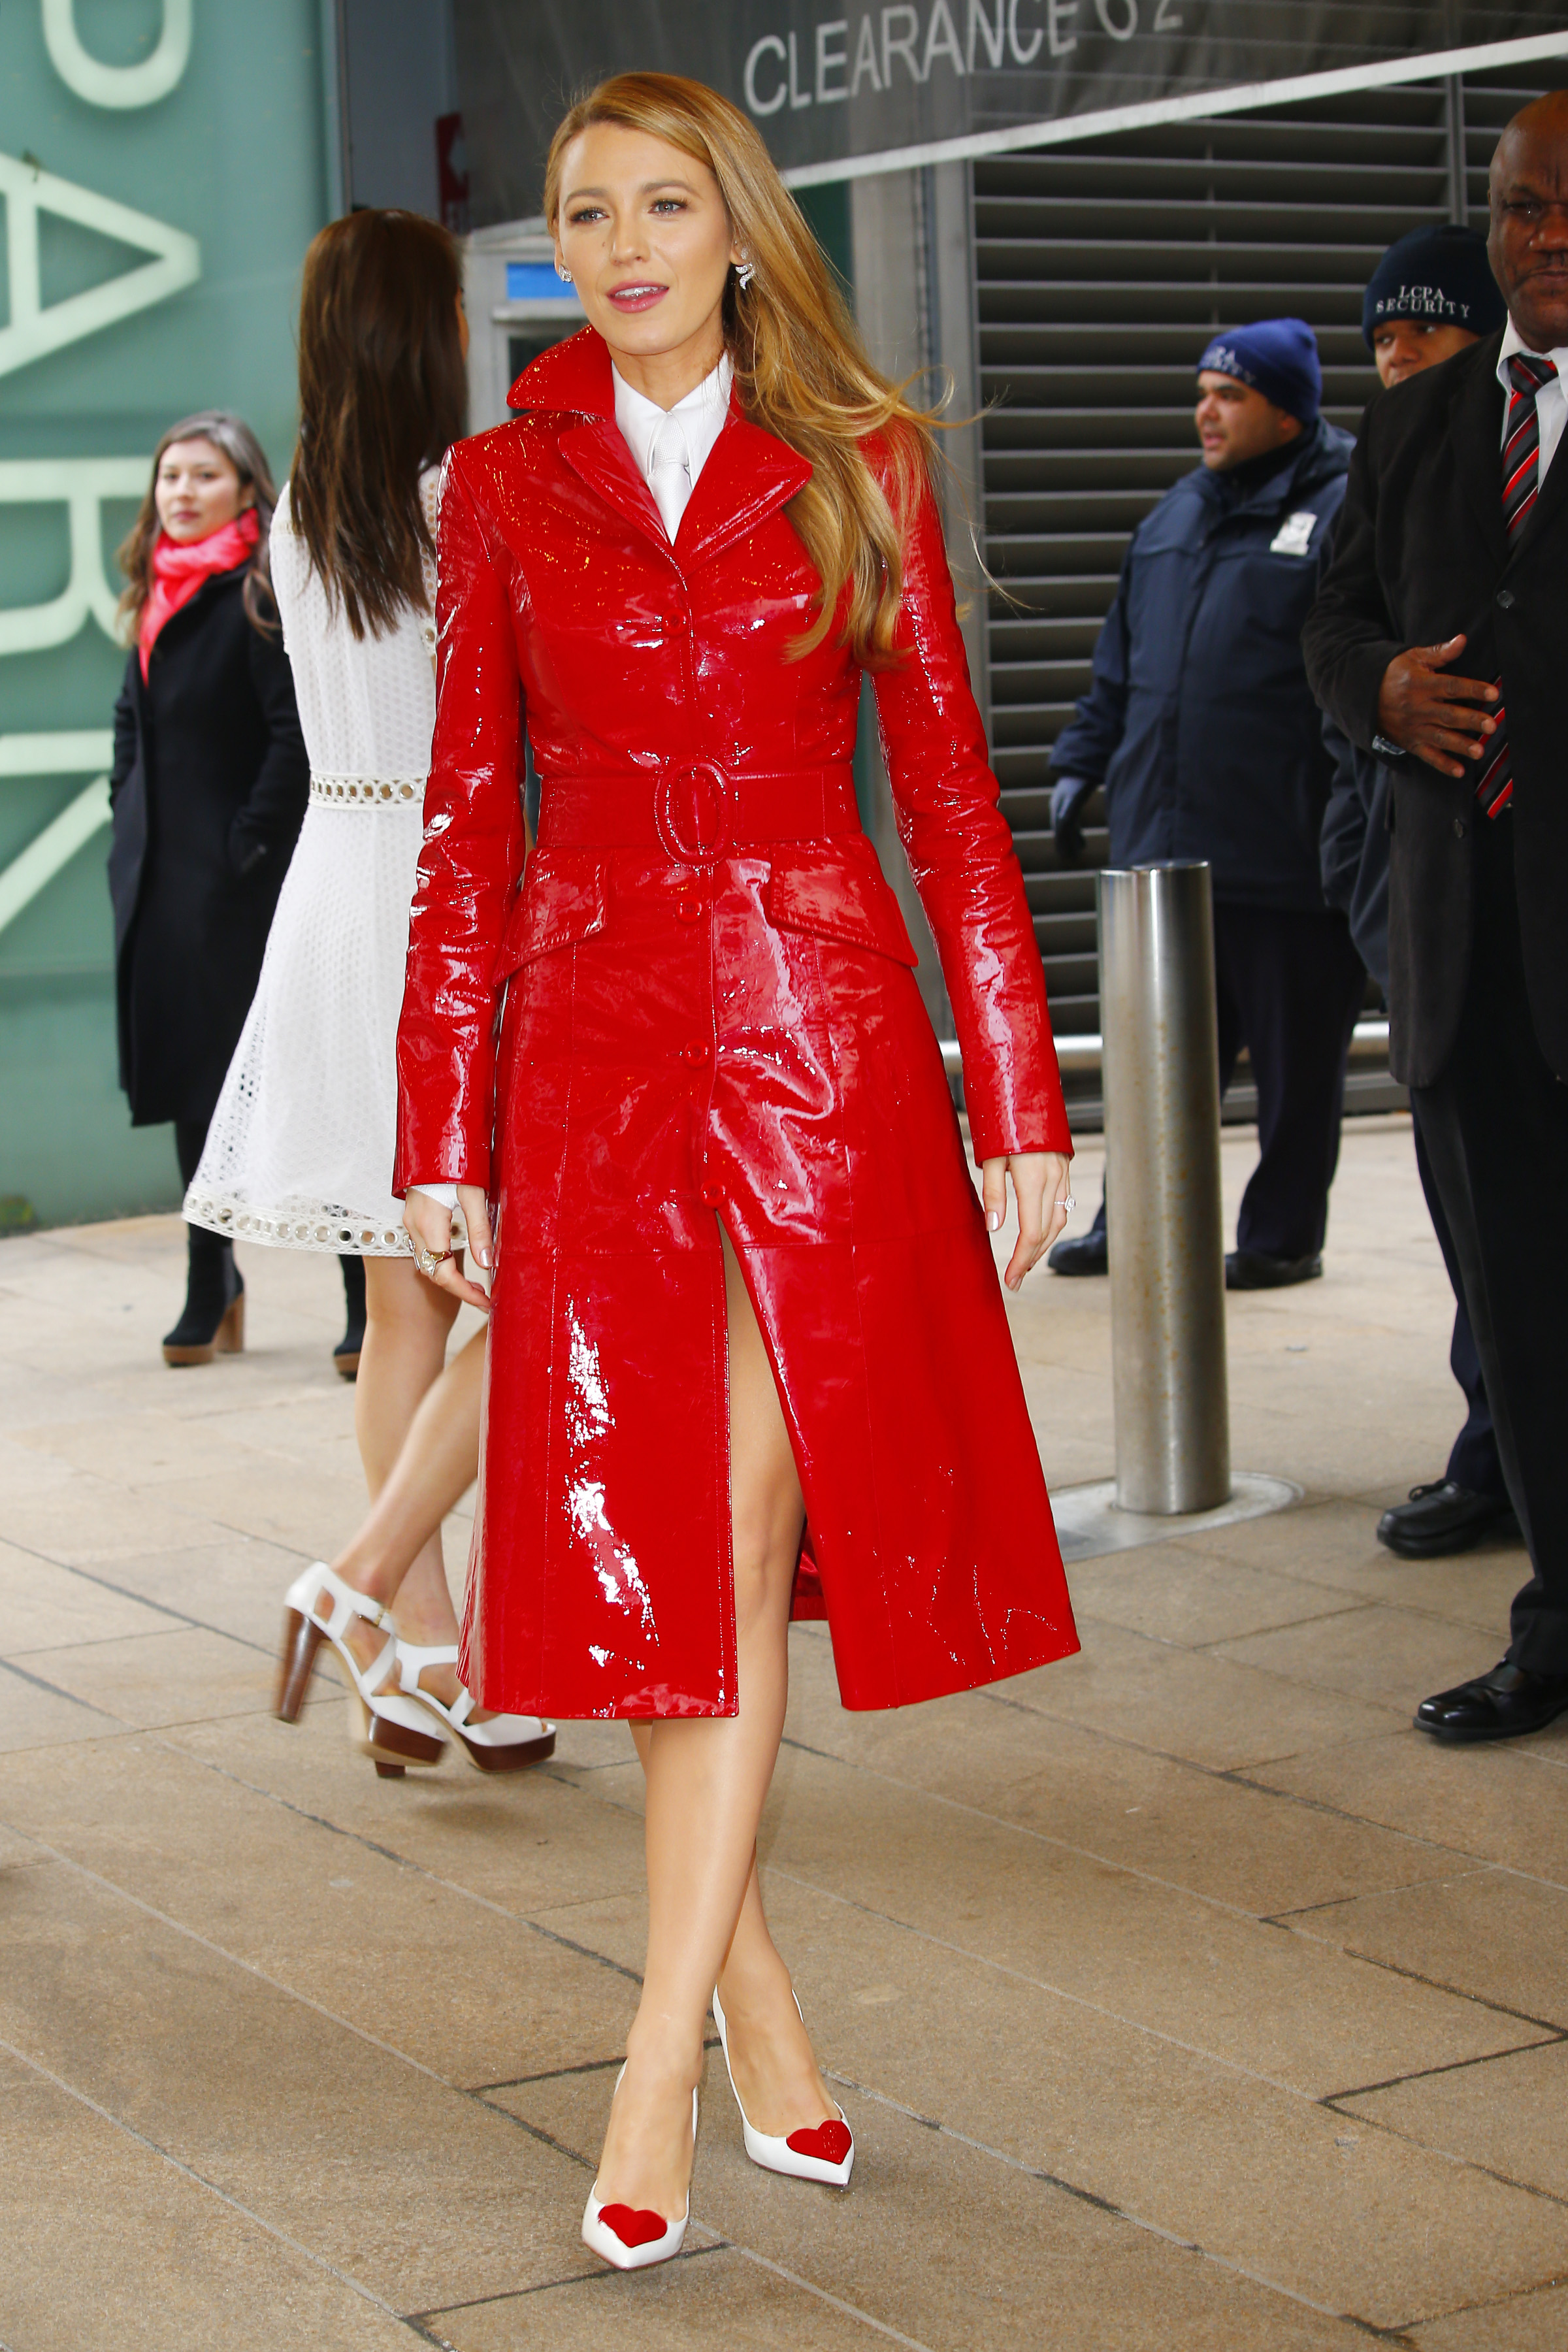 Blake Lively wears a bright red coat at Michael Kors fashion show in New York CIty <P> Pictured: Blake Lively <B>Ref: SPL1659366  140218  </B><BR/> Picture by: Edward Opi / Splash News<BR/> </P><P> <B>Splash News and Pictures</B><BR/> Los Angeles:	310-821-2666<BR/> New York:	212-619-2666<BR/> London:	870-934-2666<BR/> <span id=